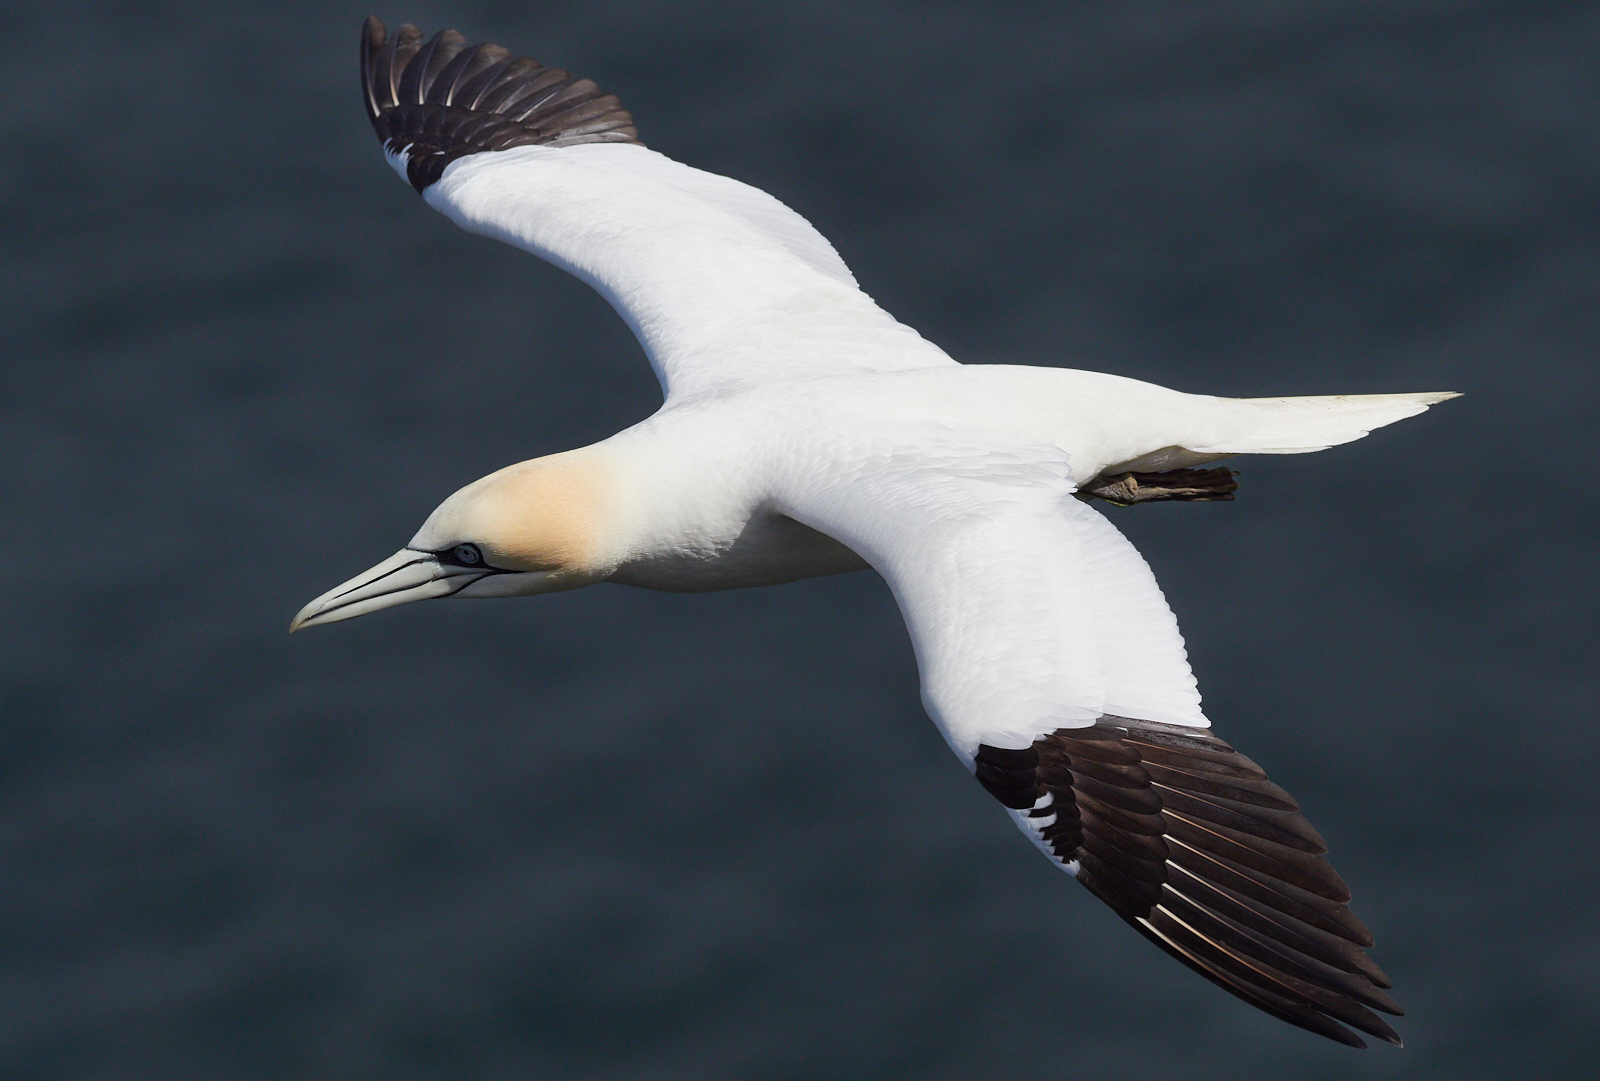 Gannet in flight1600x1200 sRGB 2.jpg